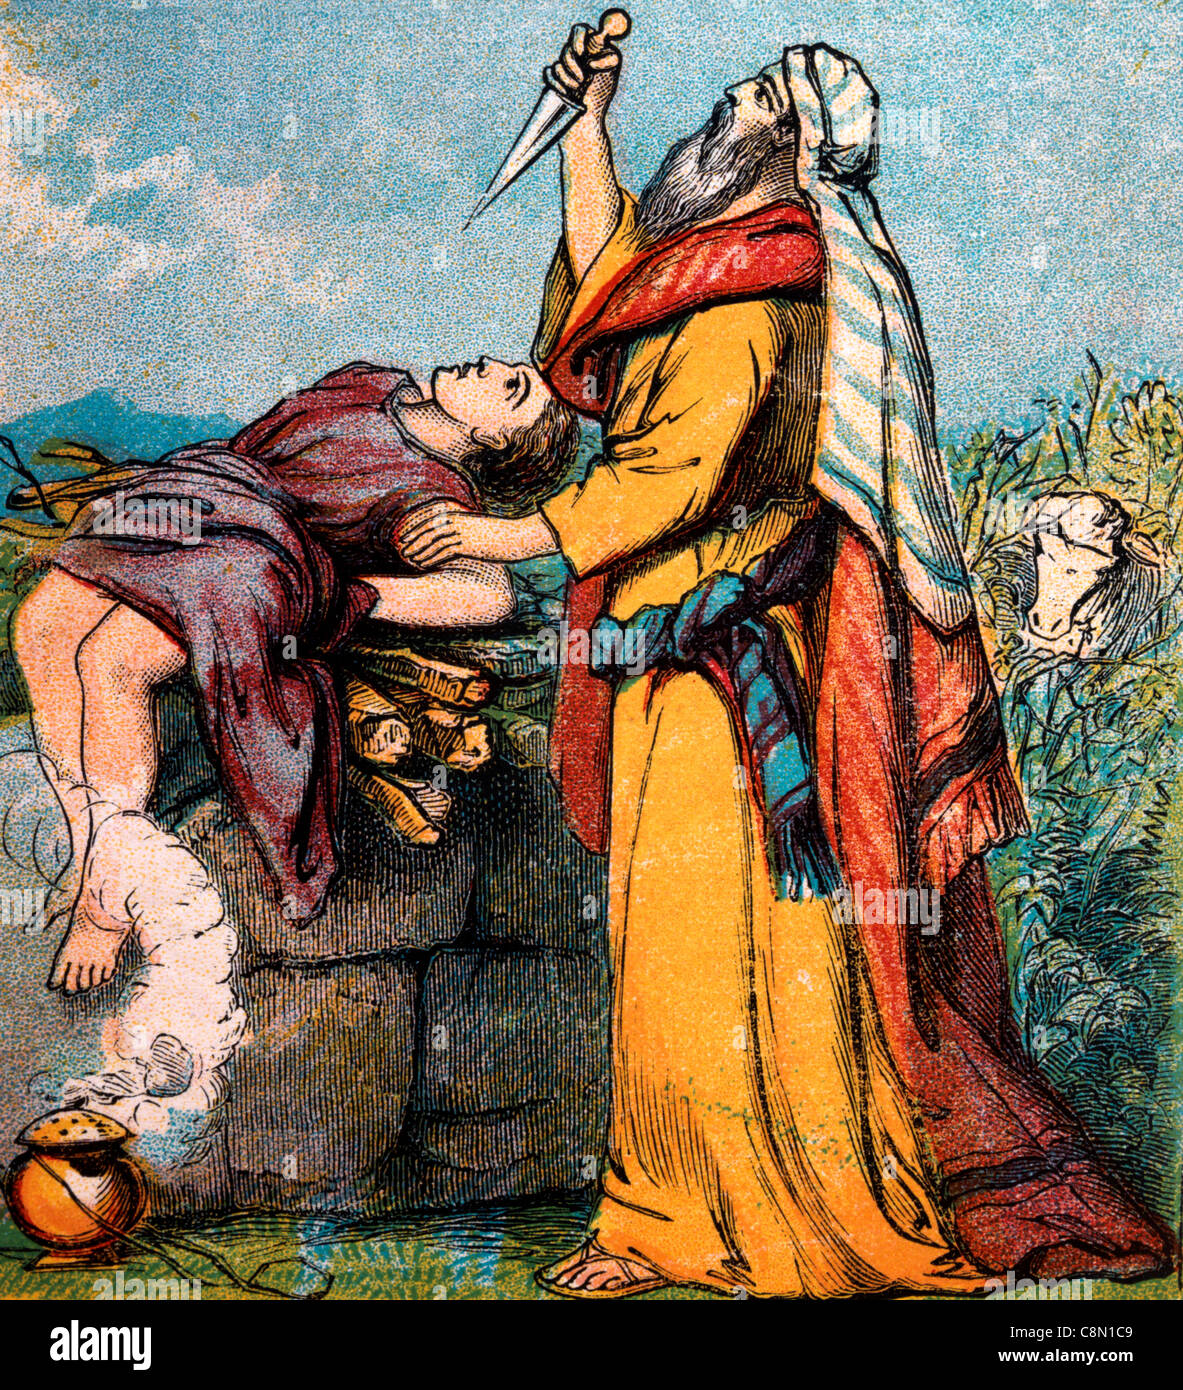 Bible Stories- Illustration Of Abraham And The Binding Of Isaac Genesis xxii 1-19 - Stock Image